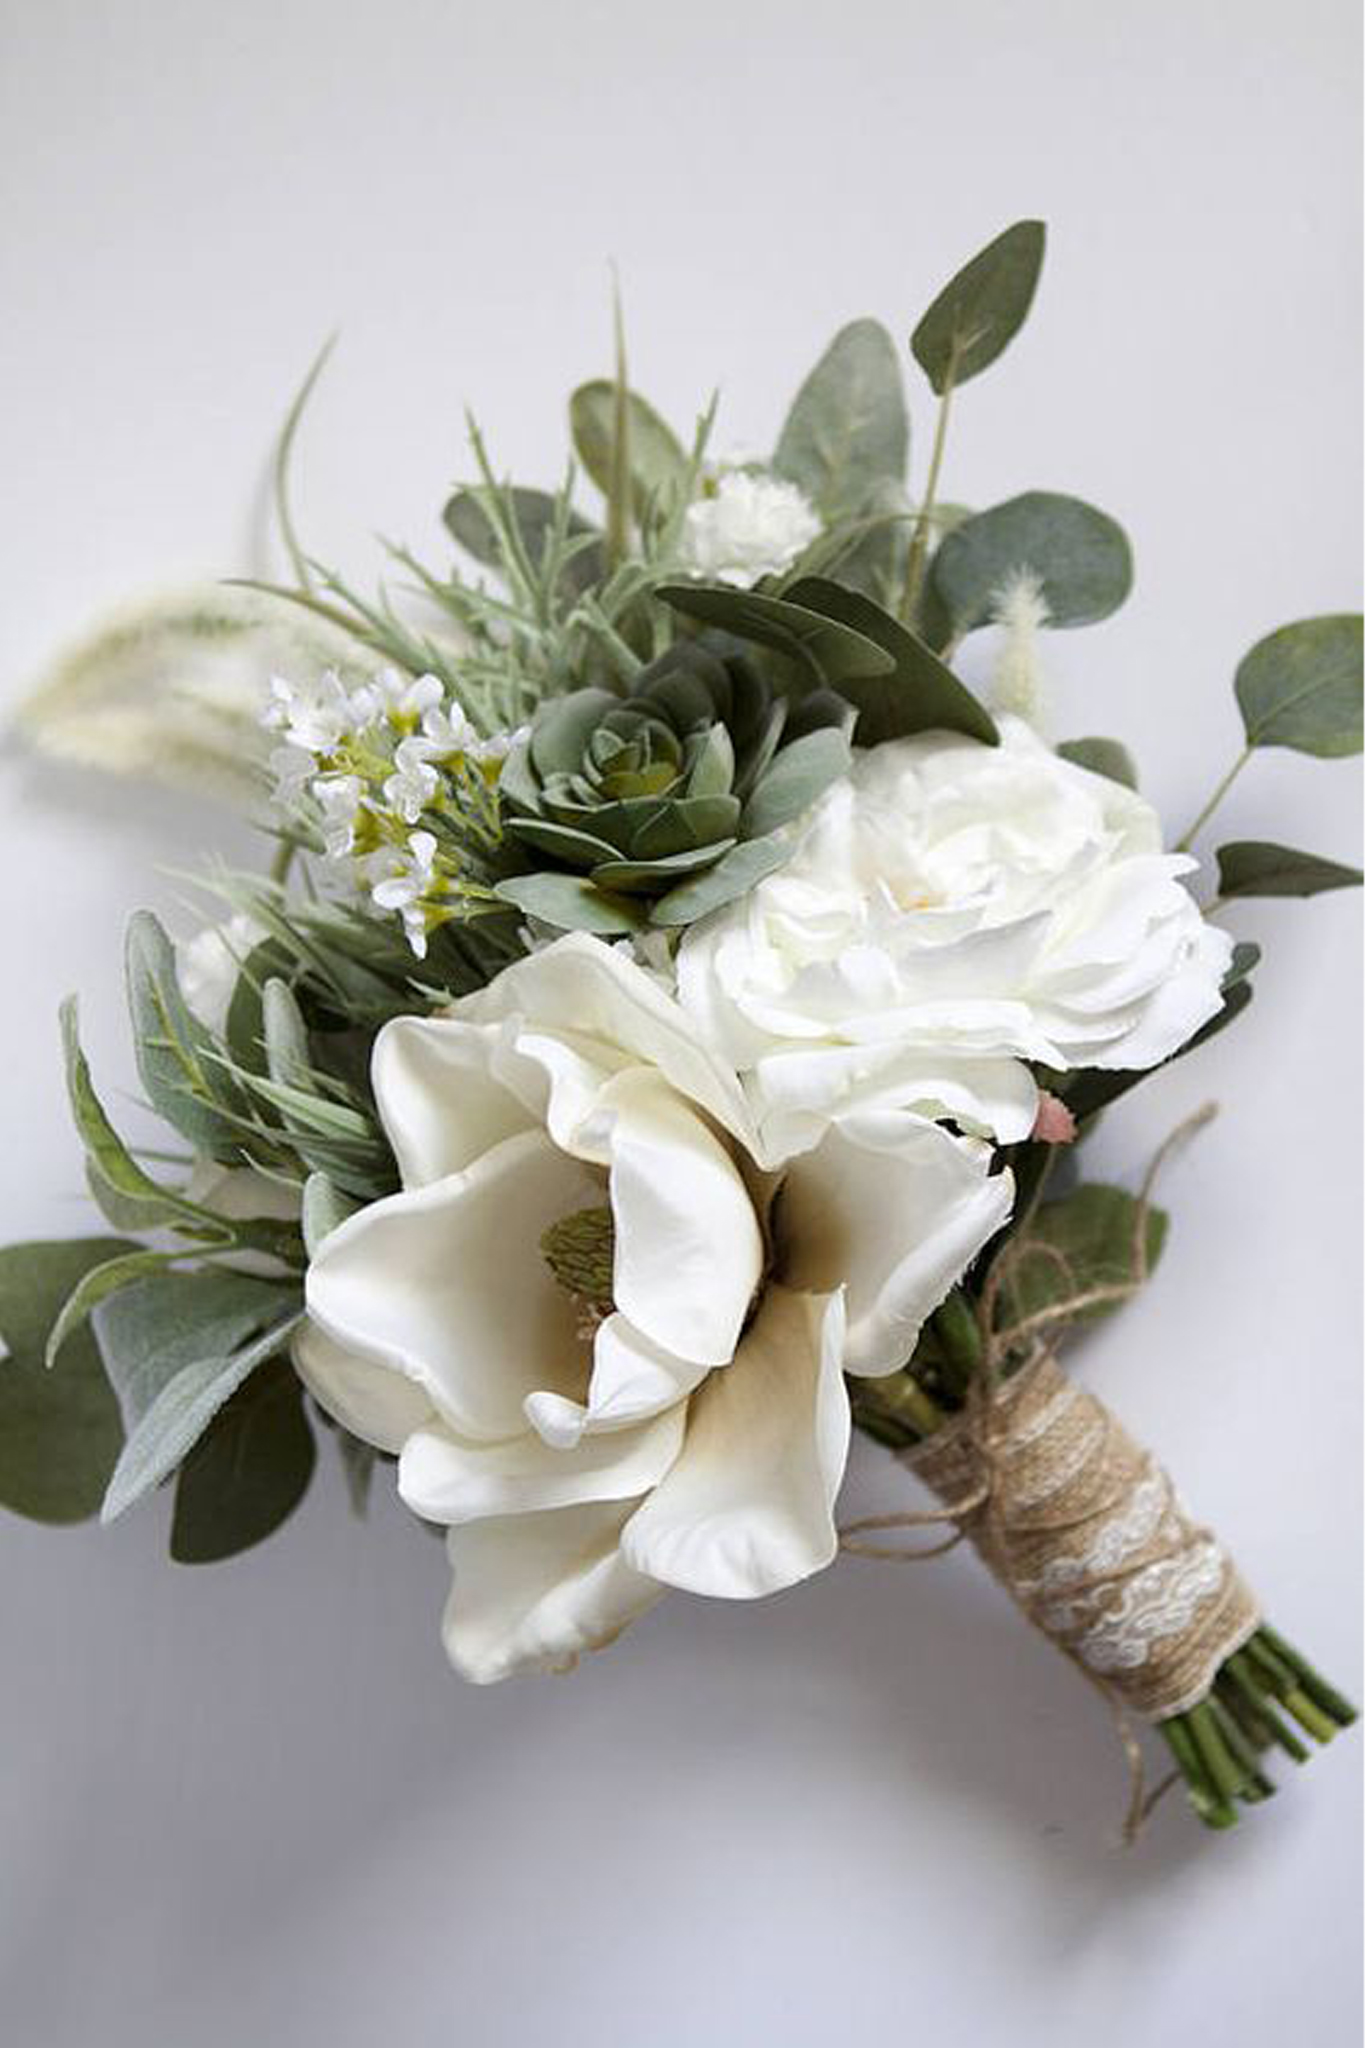 A bouquet of white roses and eucalyptus leaves wrapped in rustic twine and ribbon.